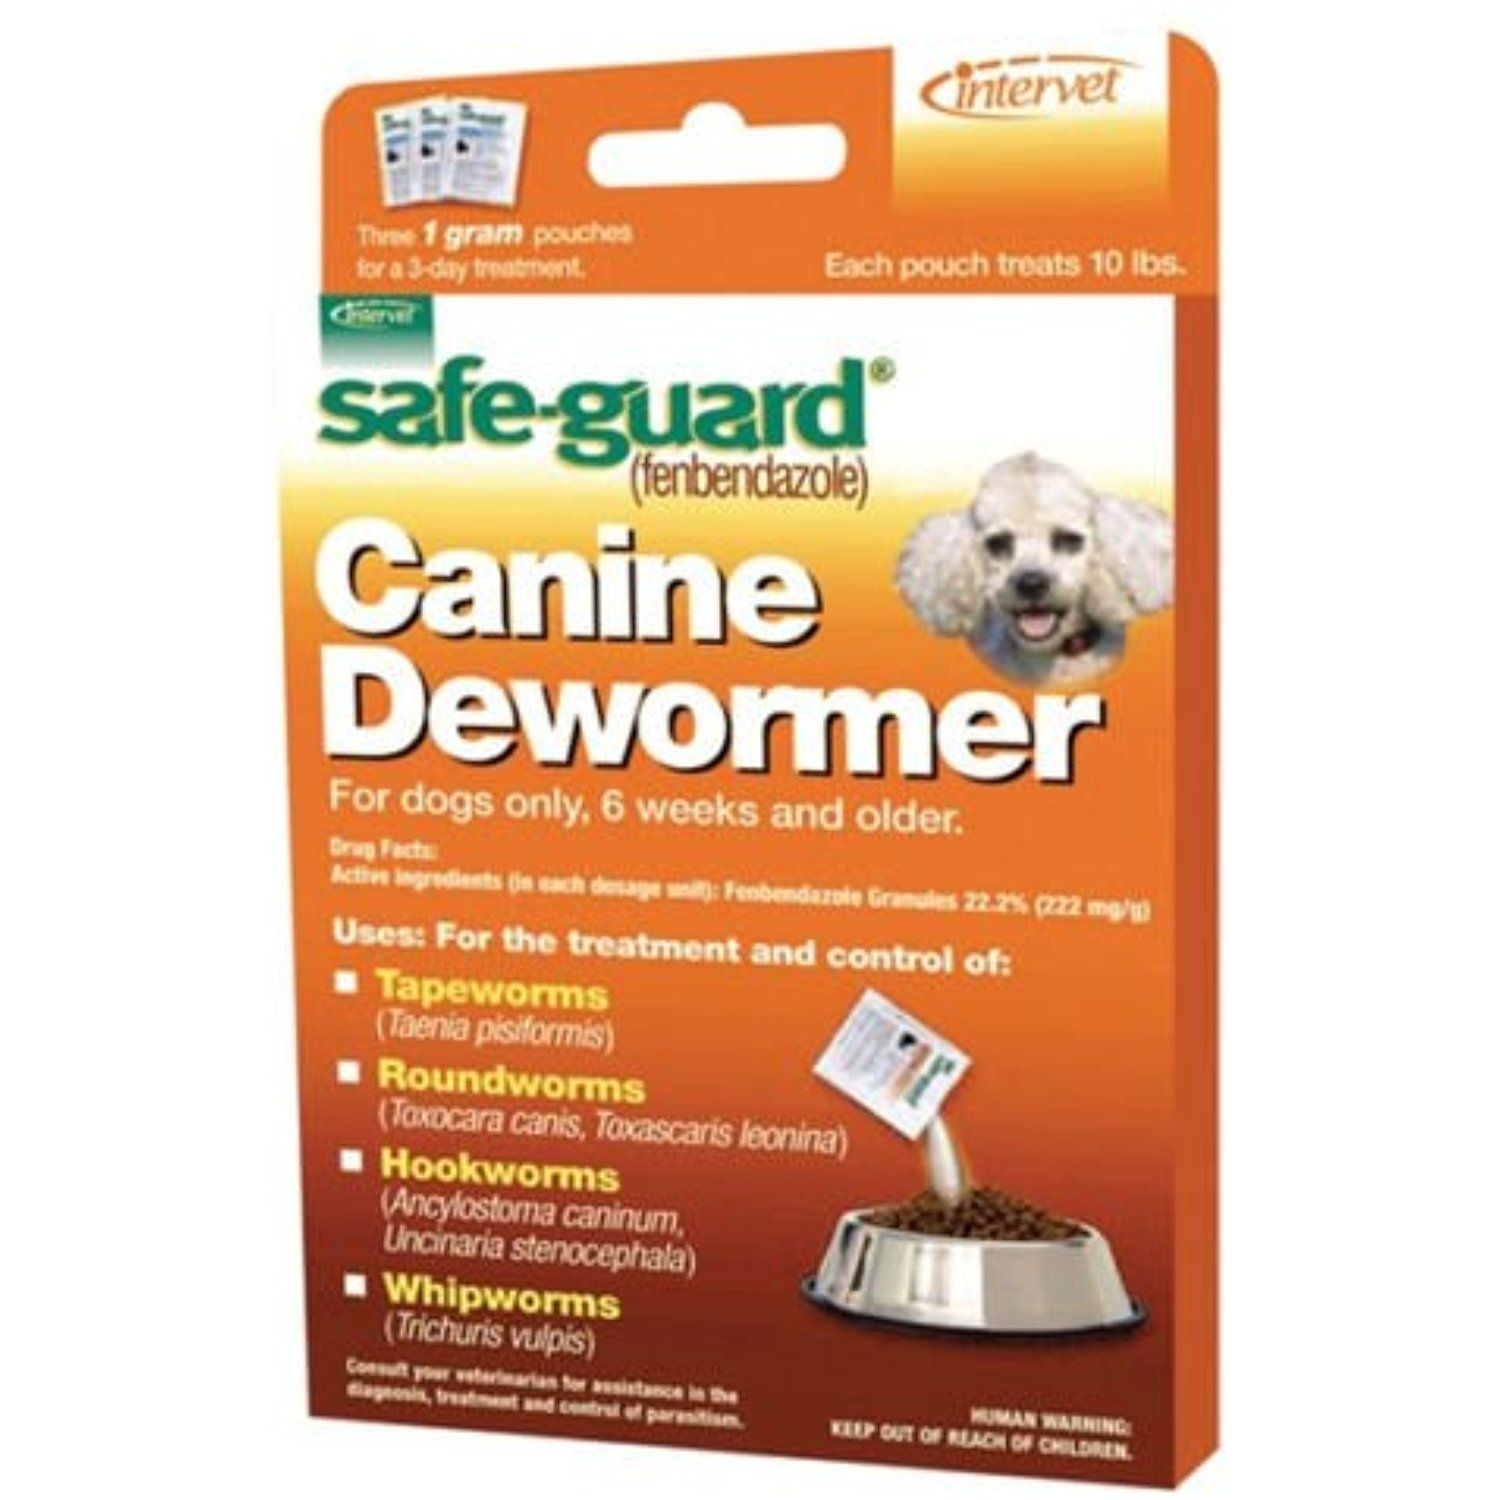 Dog Puppy Animal Wormer Fenbendazole Broad Spectrum Pet Dewormer Safeguard 10lb You Can Check Out This Great Prod Deworming Dogs Canine Dog Dental Cleaning